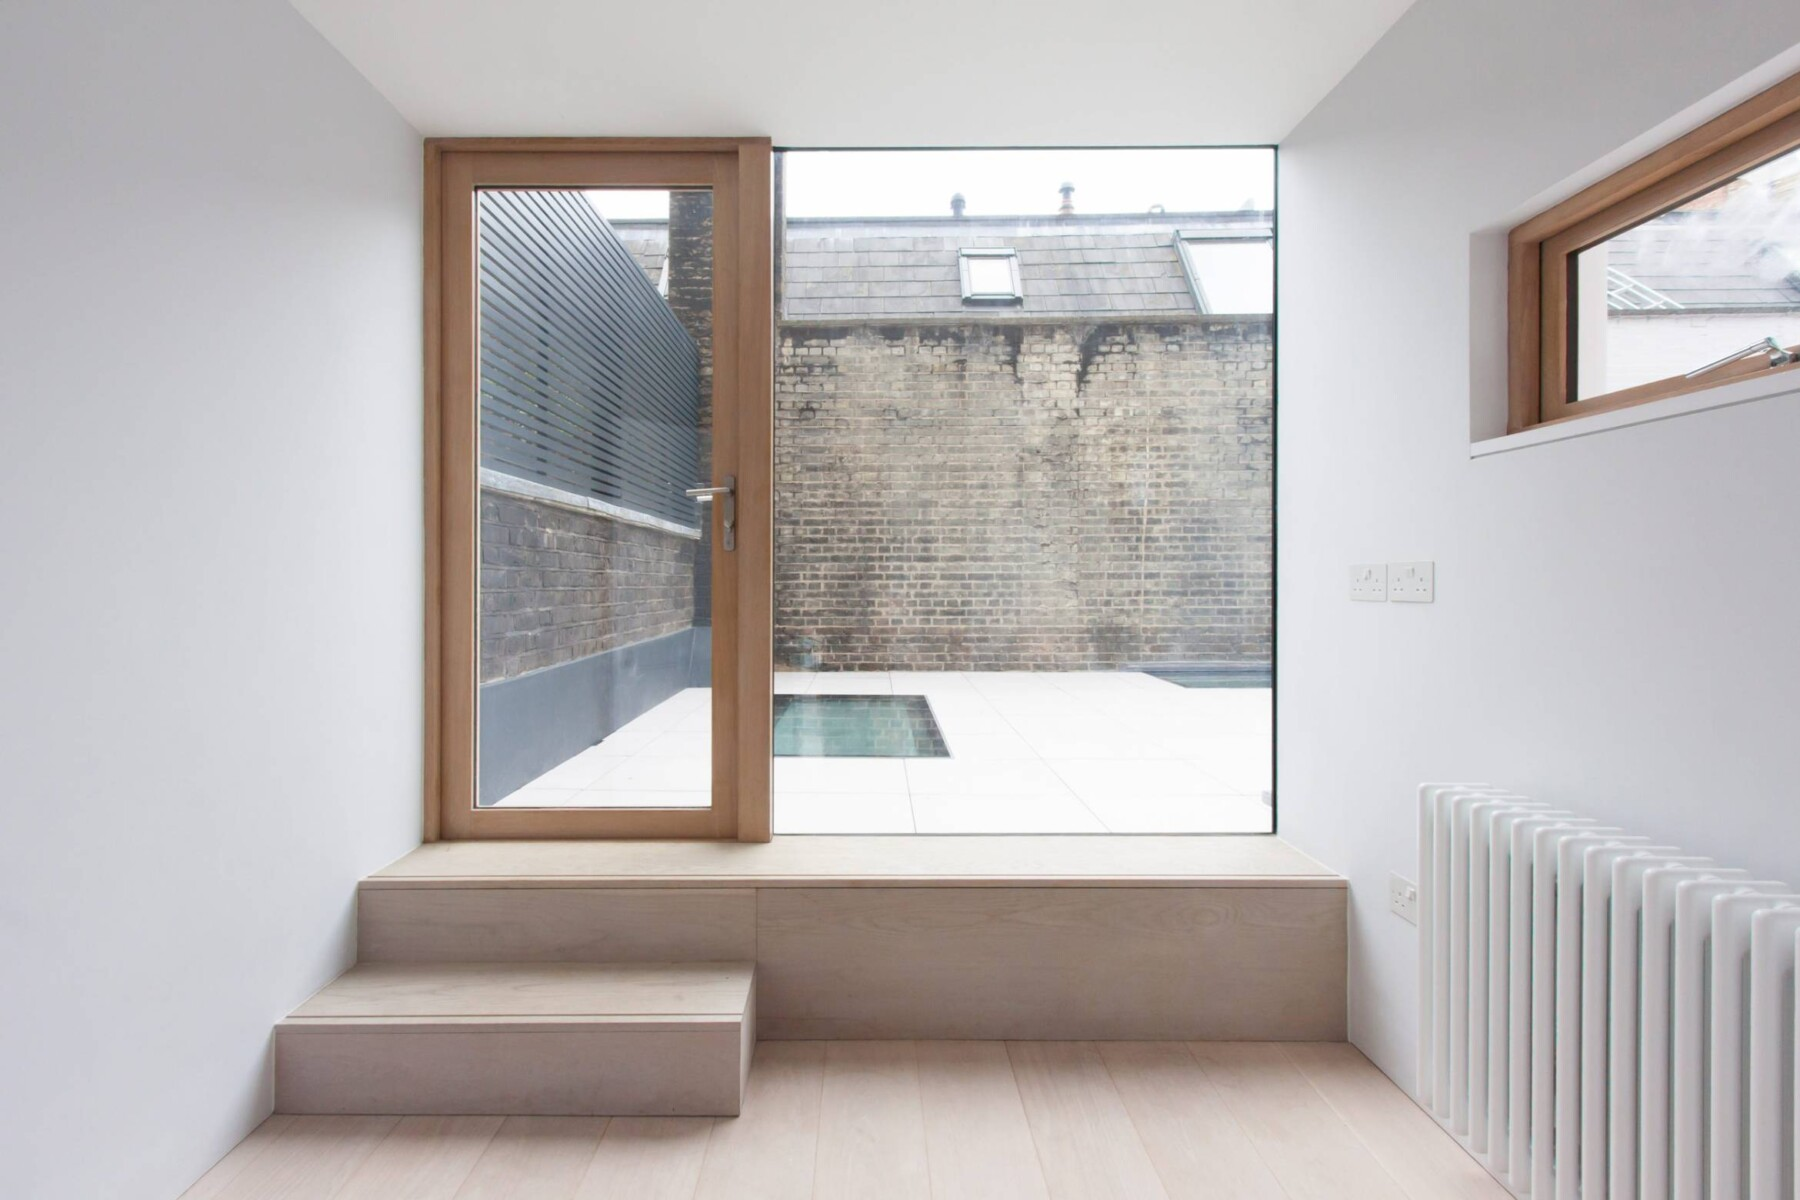 Georgian fitzrovia house extension - Camden architects